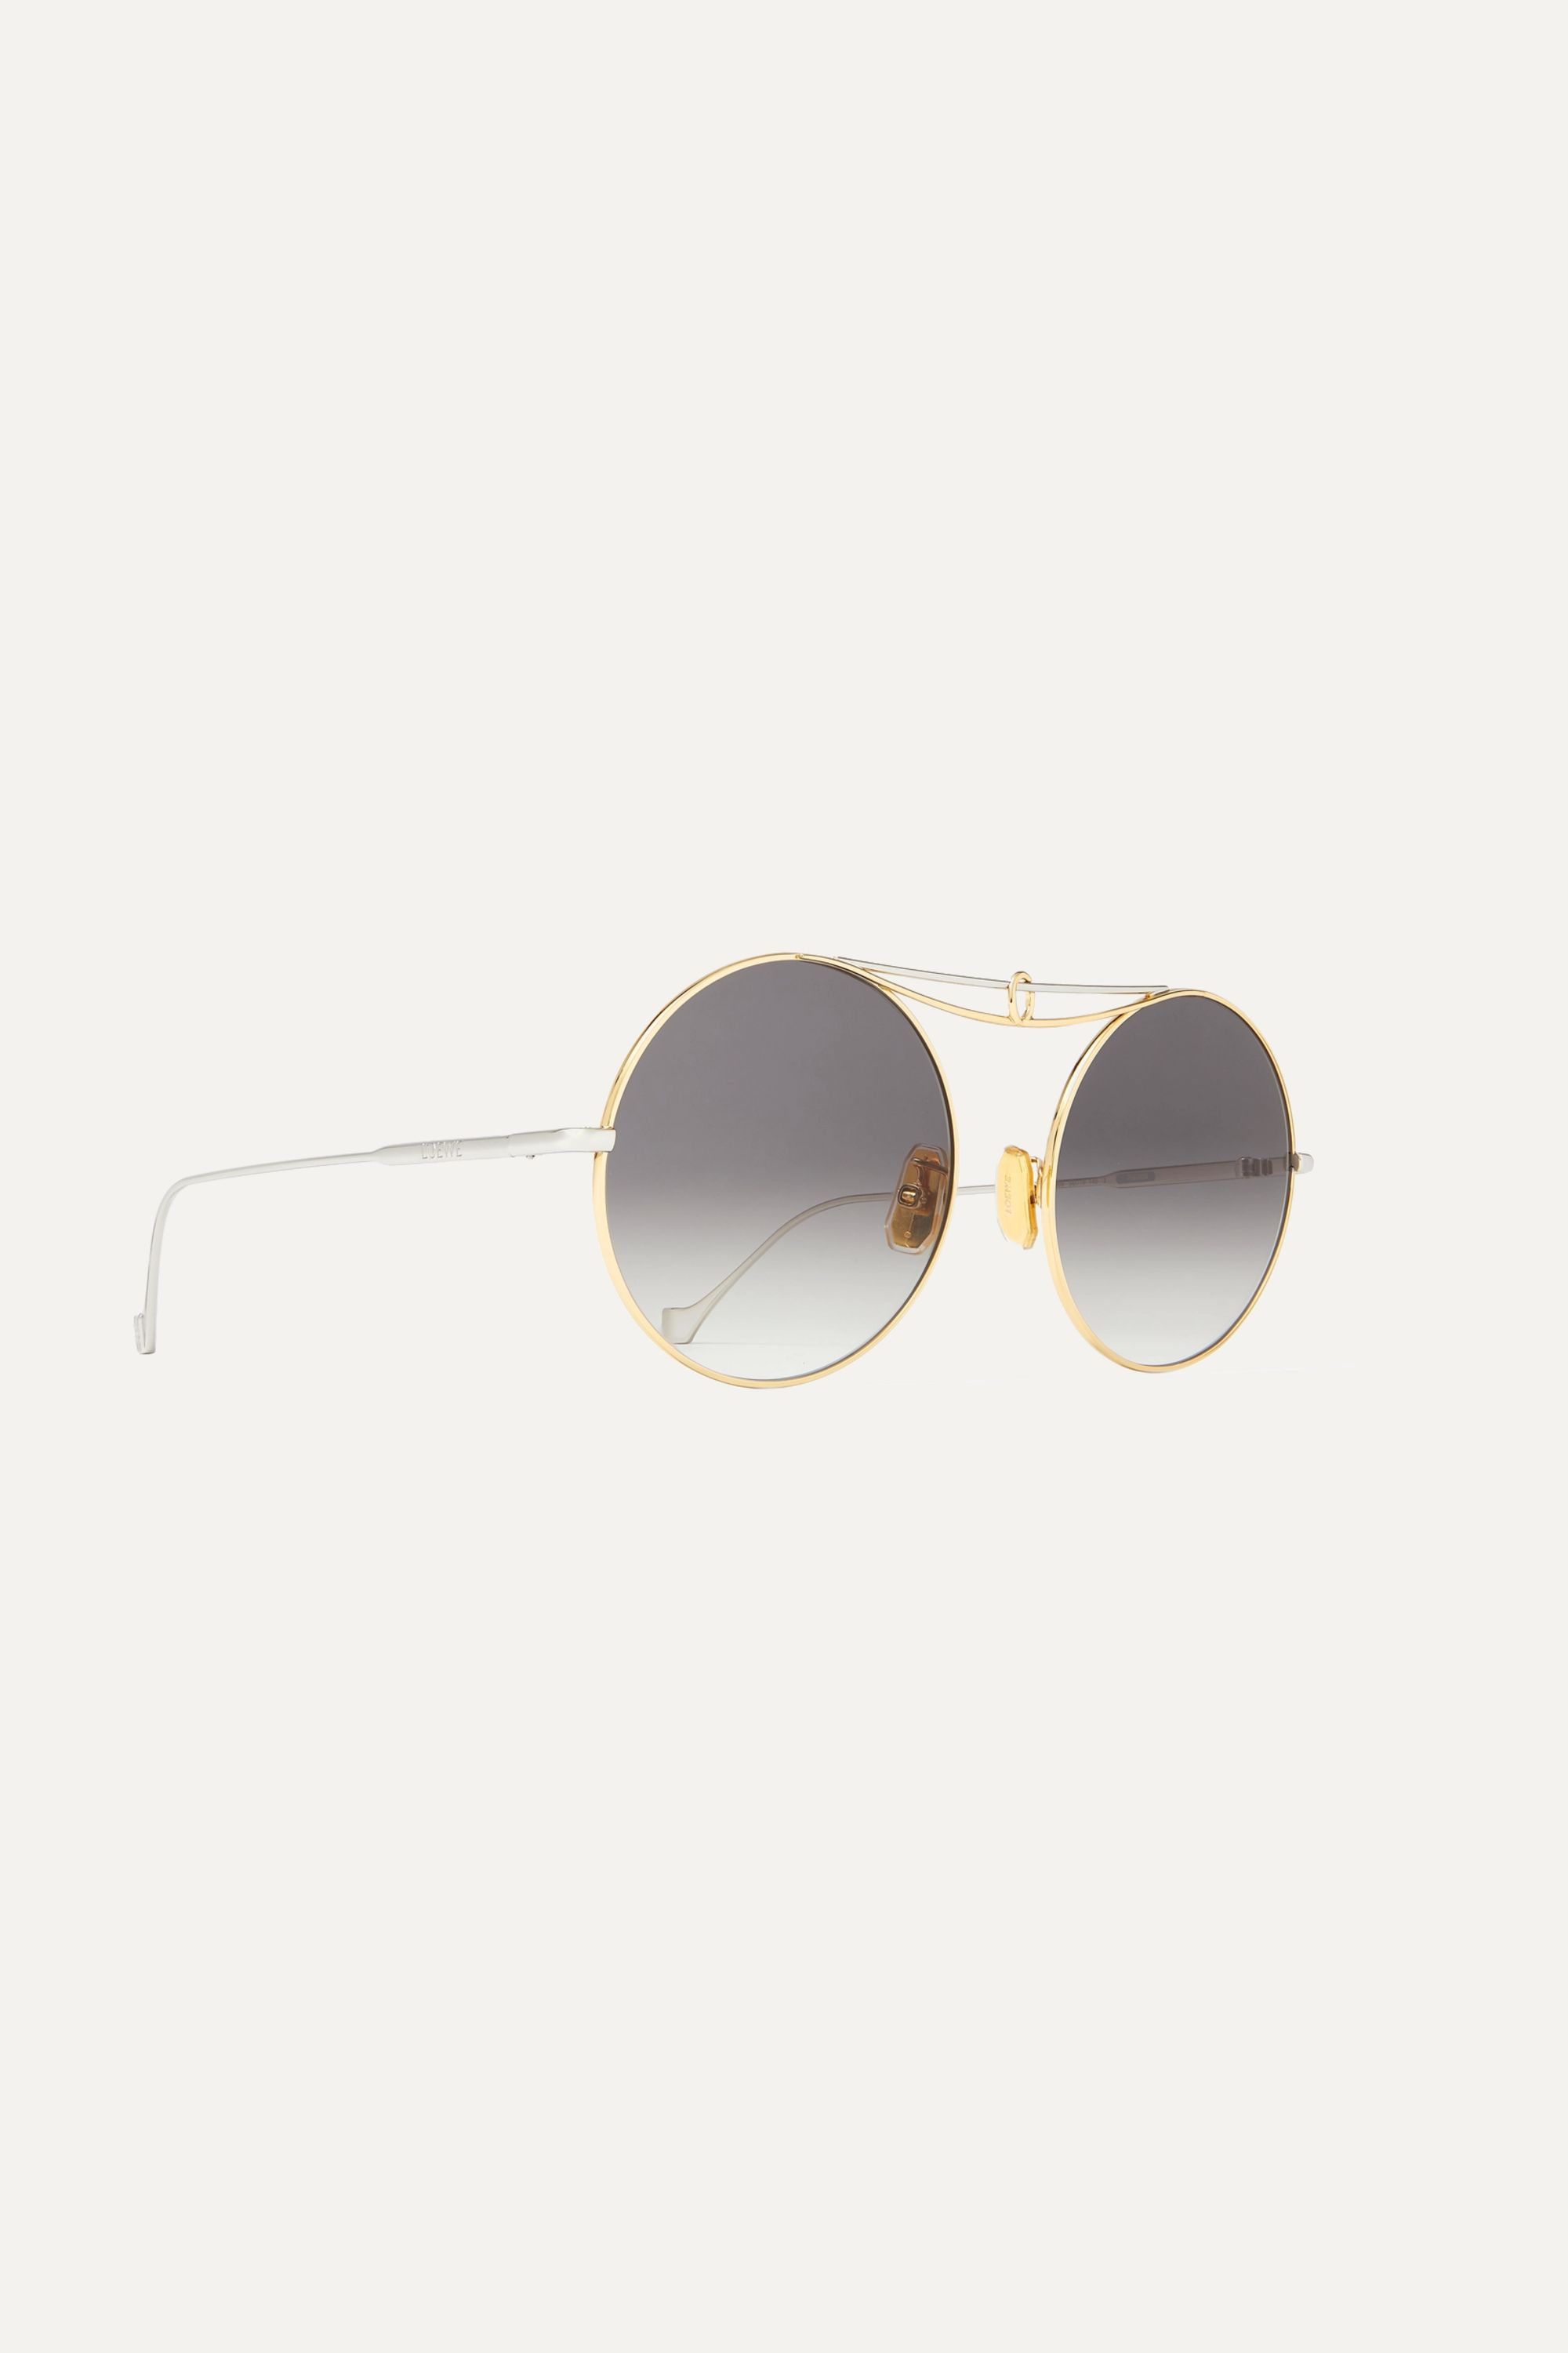 Loewe Round-frame silver and gold-tone sunglasses